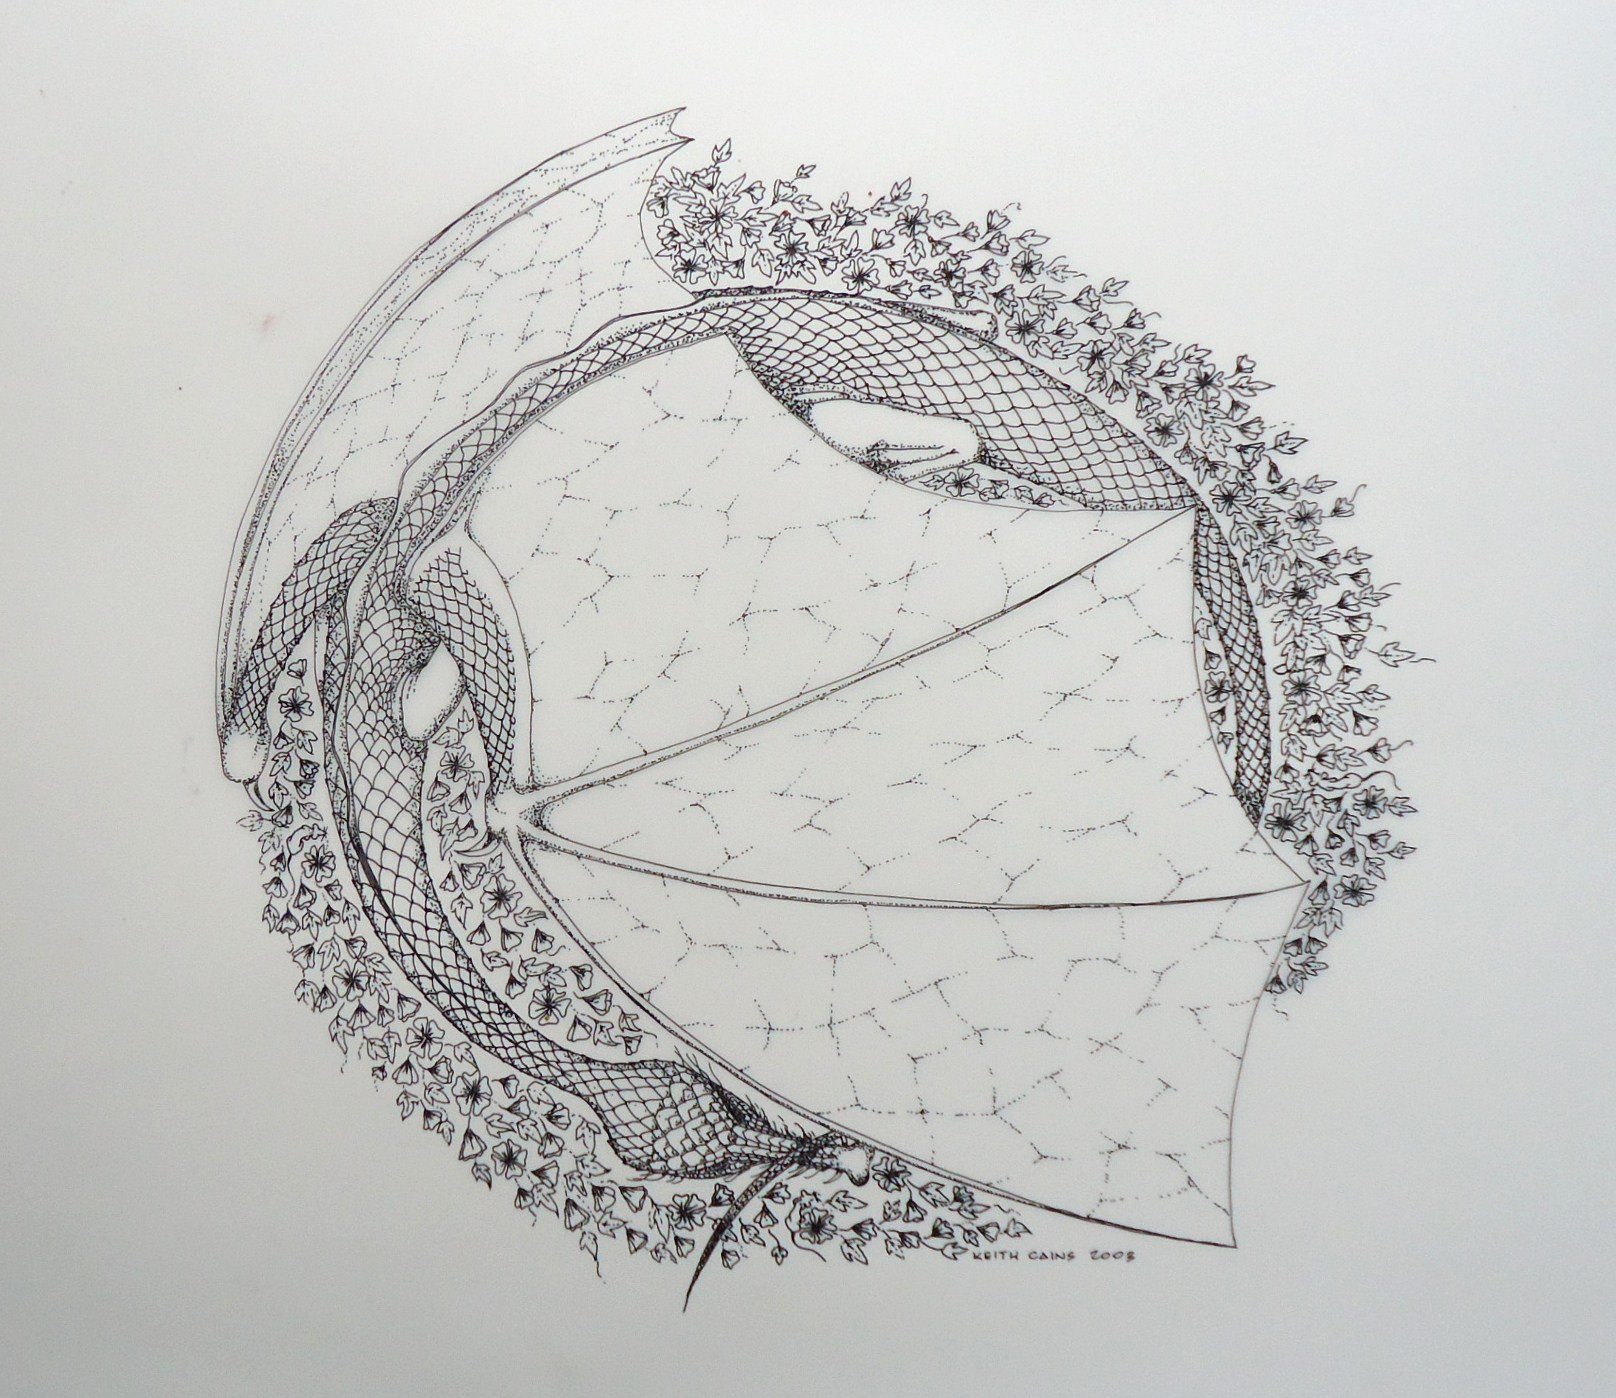 An ink on mylar drawing of a dragon surrounded by flowers by Keith Cains.